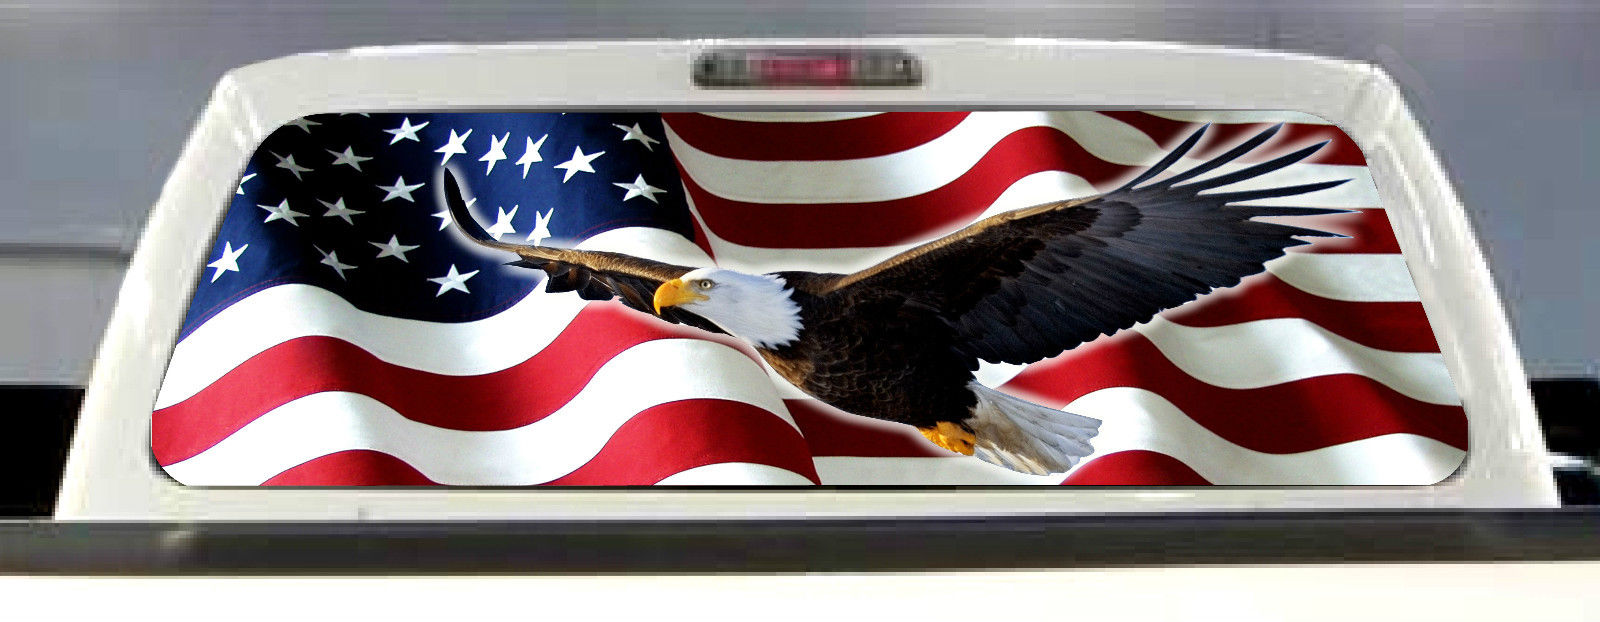 Car sticker eagle - American Flag Eagle Pick Up Truck Rear Window Graphic Decal Perforated Vinyl